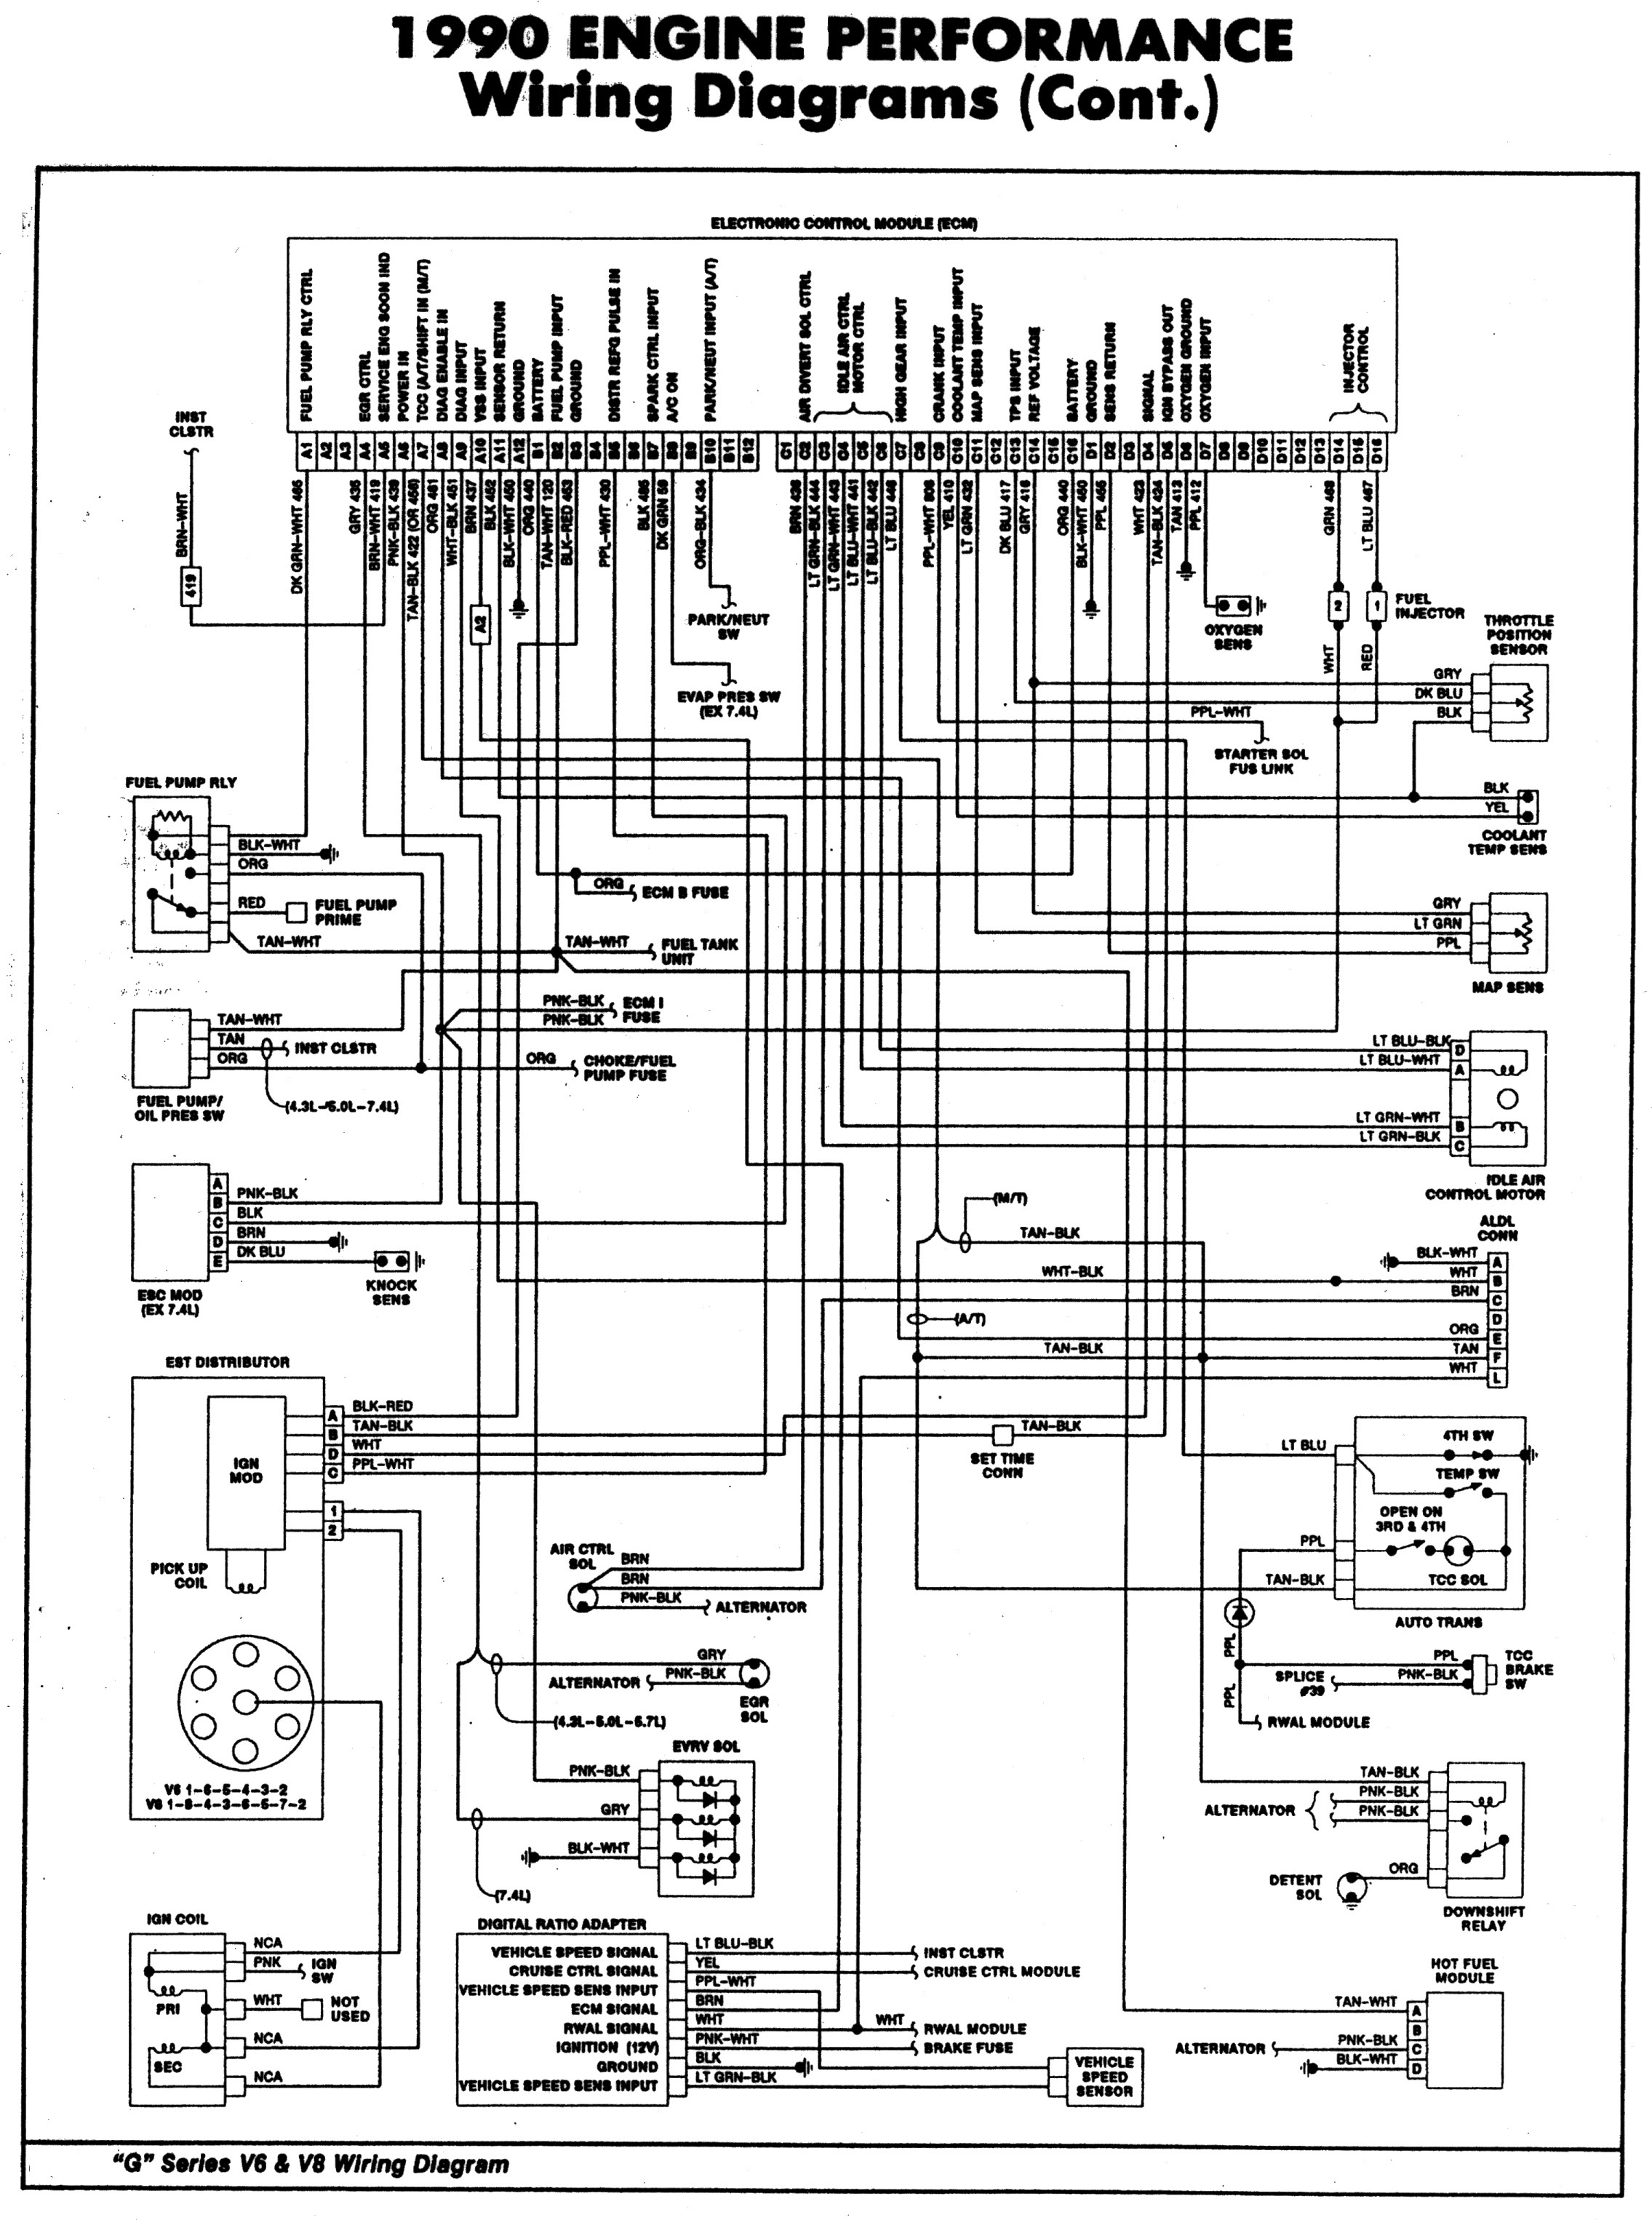 medium resolution of wiring diagram for 94 chevy pickup 1500 wiring diagram details wiring diagram for 94 chevy pickup 1500 transmission